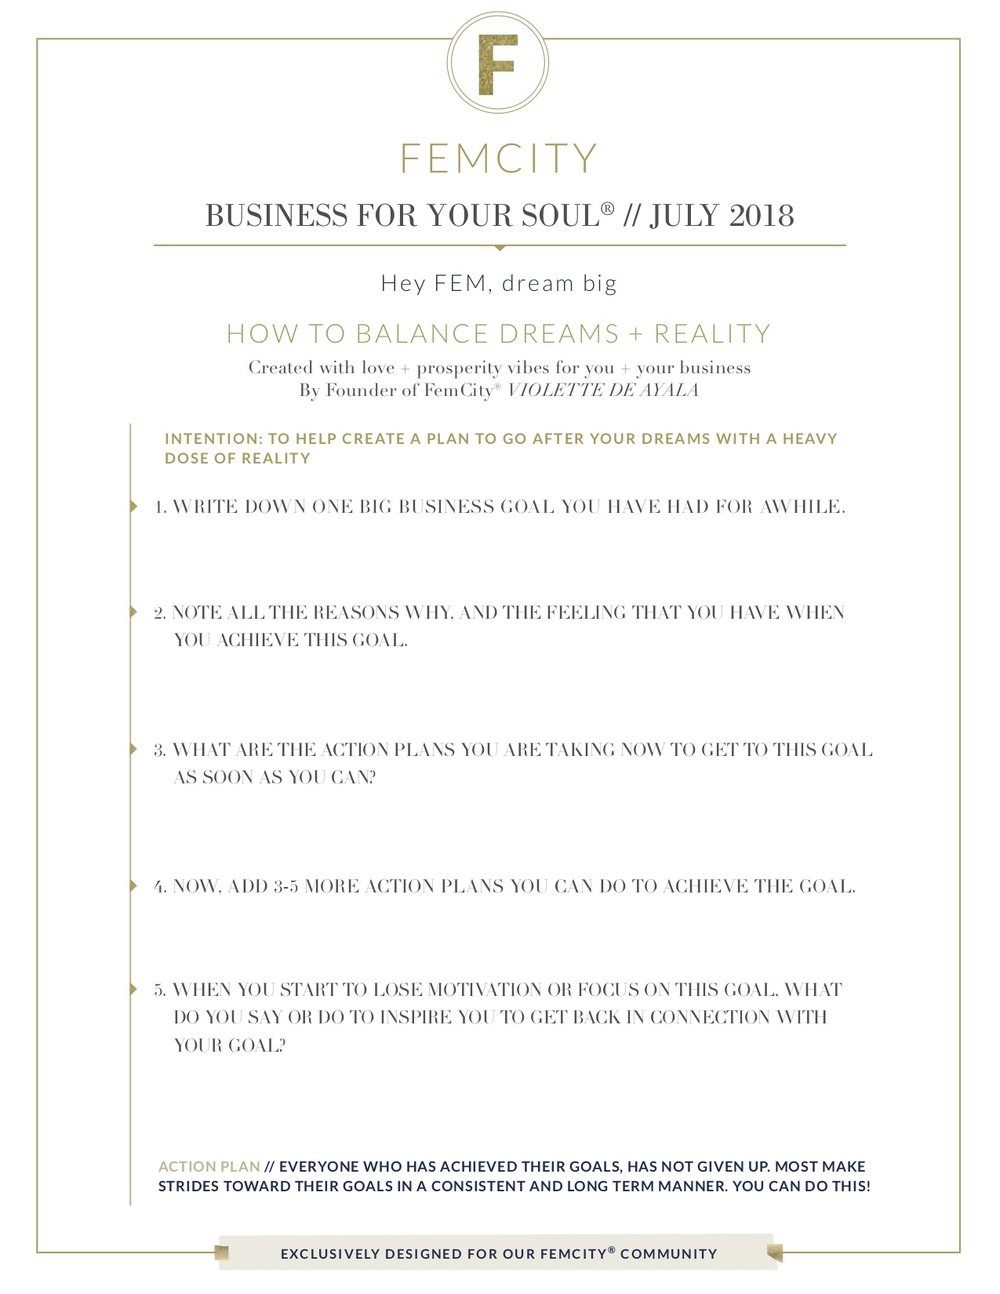 HOW+TO+BALANCE+DREAMS+AND+REALITY+JULY+2018.jpg